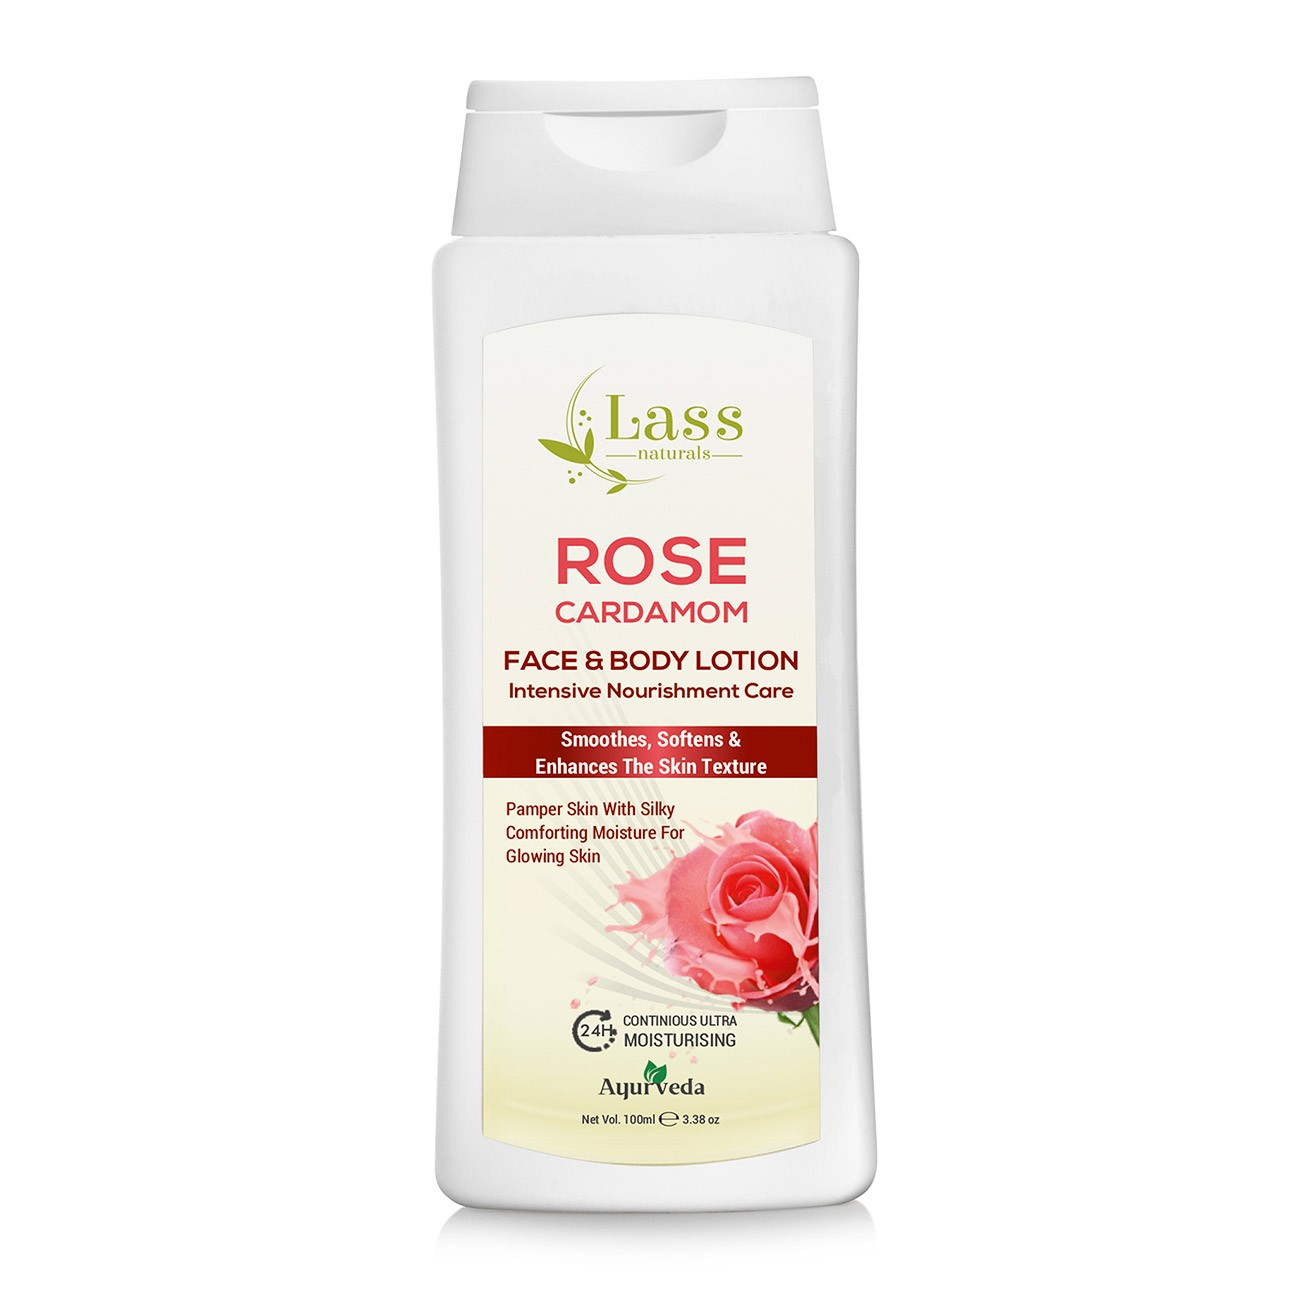 Rose Cardamom Face & Body Moisturising Lotion